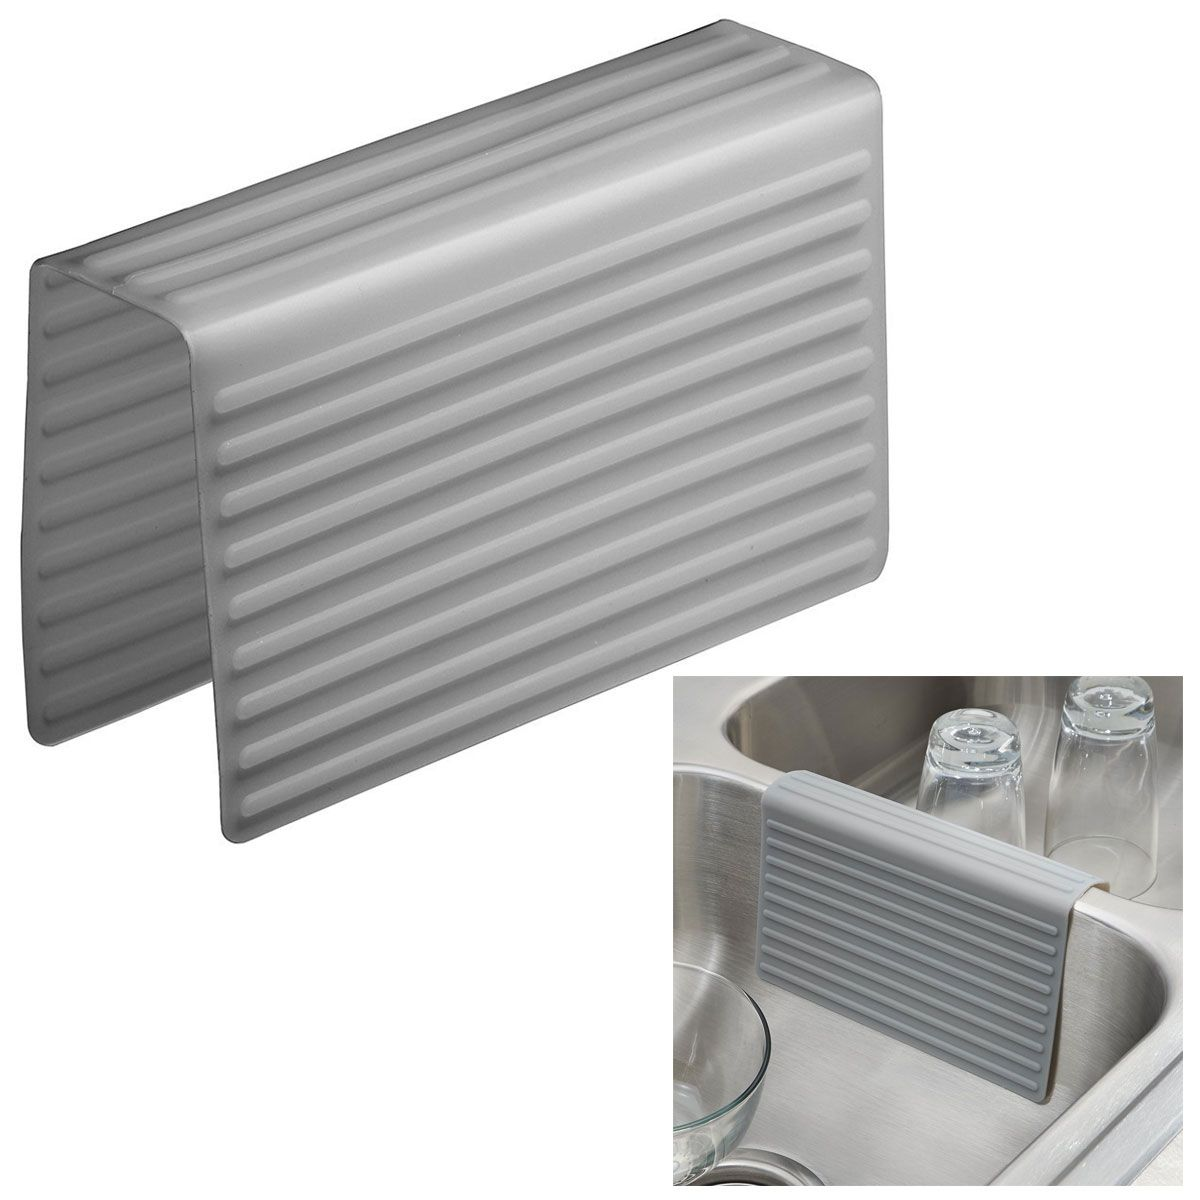 Interdesign 64183 Lineo Kitchen Sink Saddle Double Sink Protector Cover Gray Sink Accessories Sink Grey Kitchen Sink